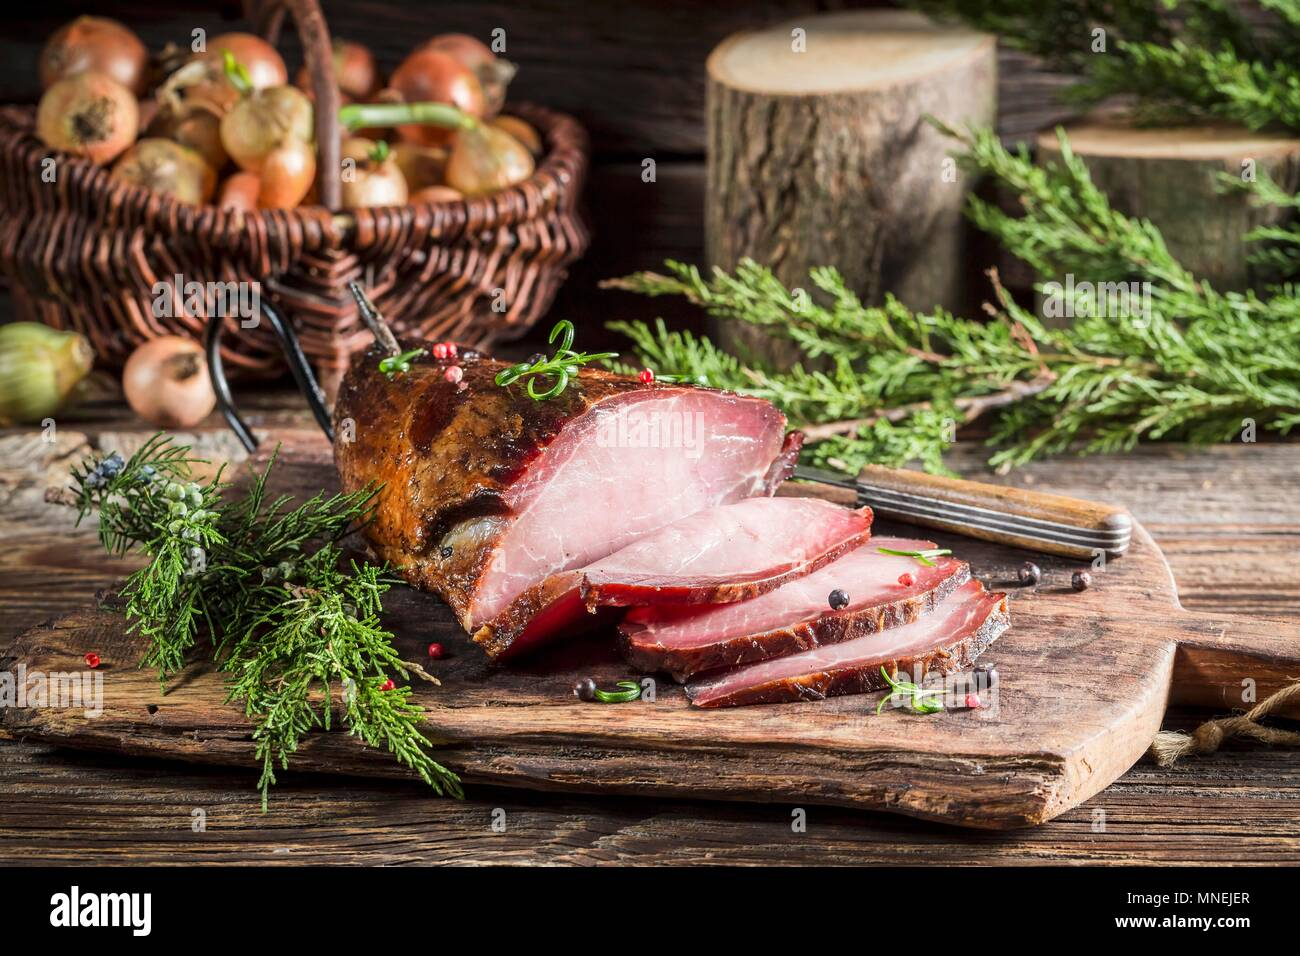 Smoked ham with juniper berries on a wooden chopping board Stock Photo